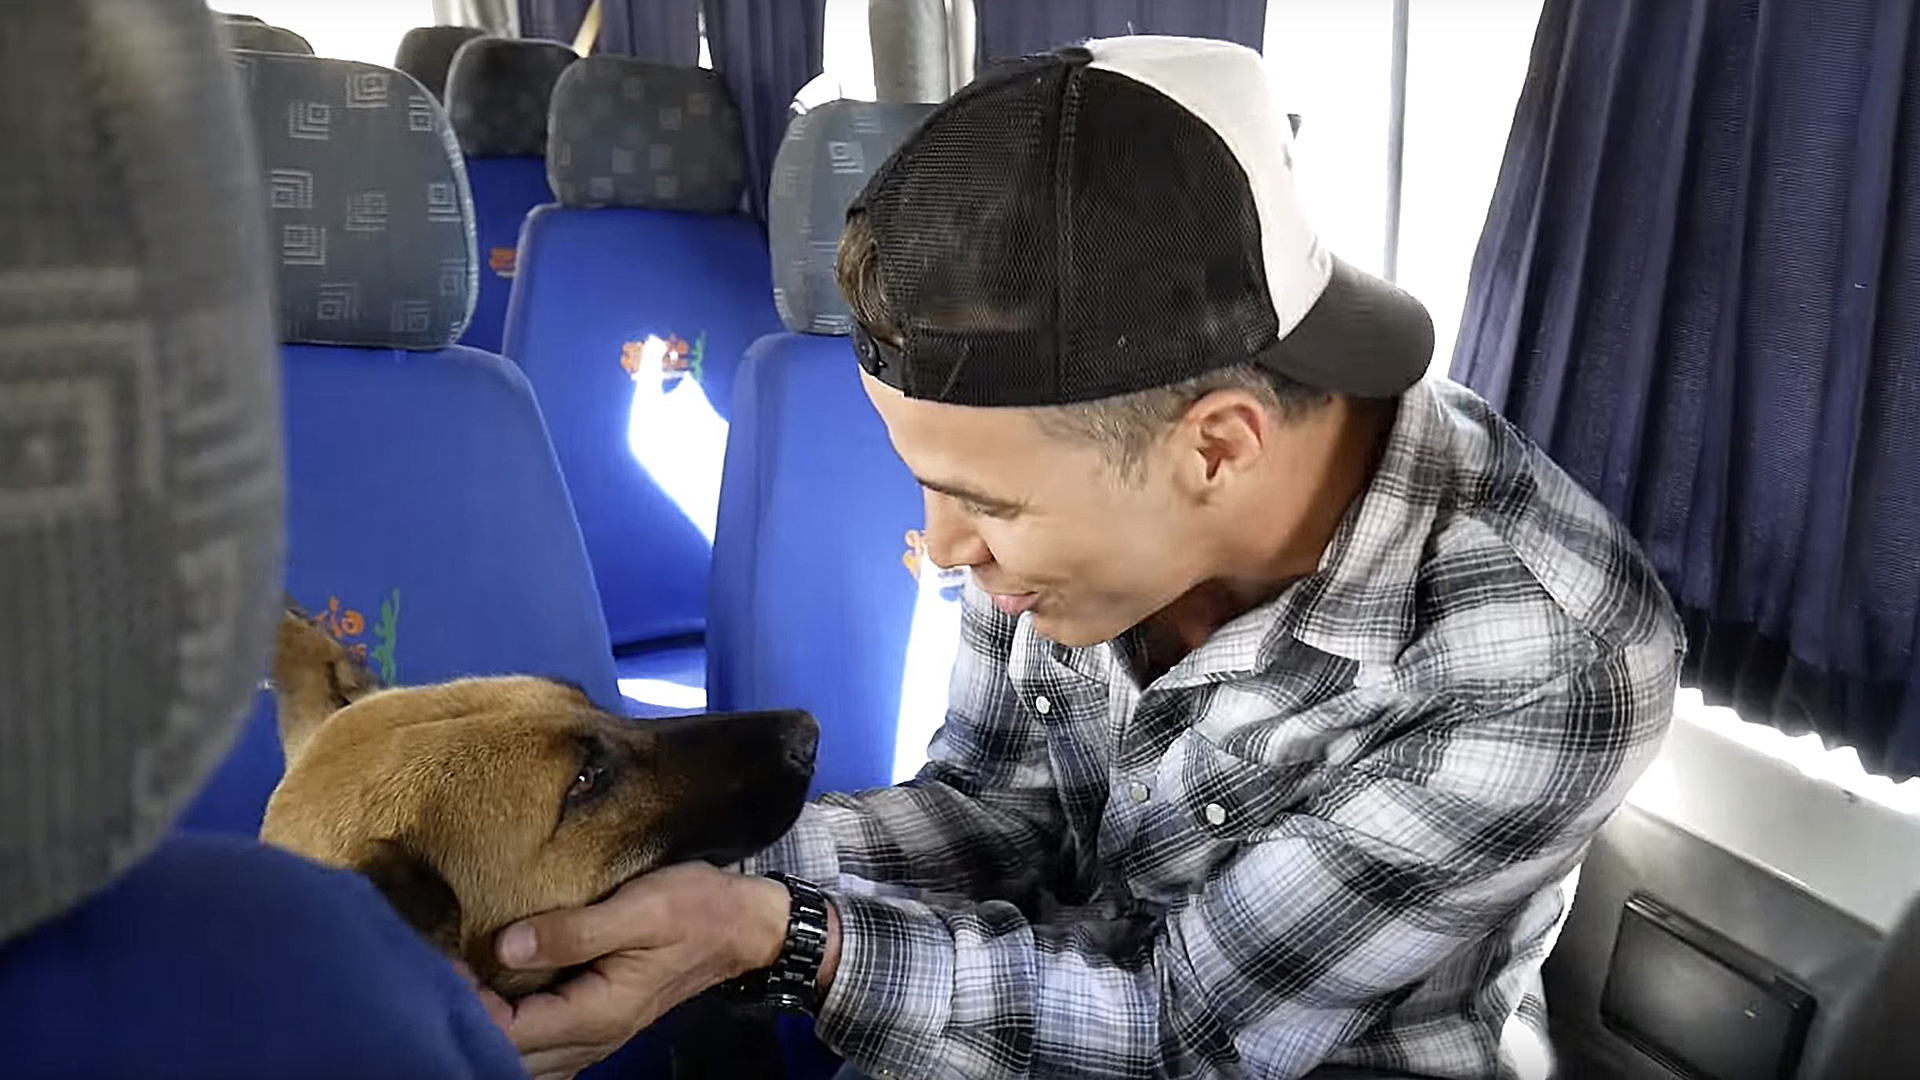 Steve O Rescues Stray Dog In Peru Finds True Love The official tik tok account for mtv's #ridiculousness! today show